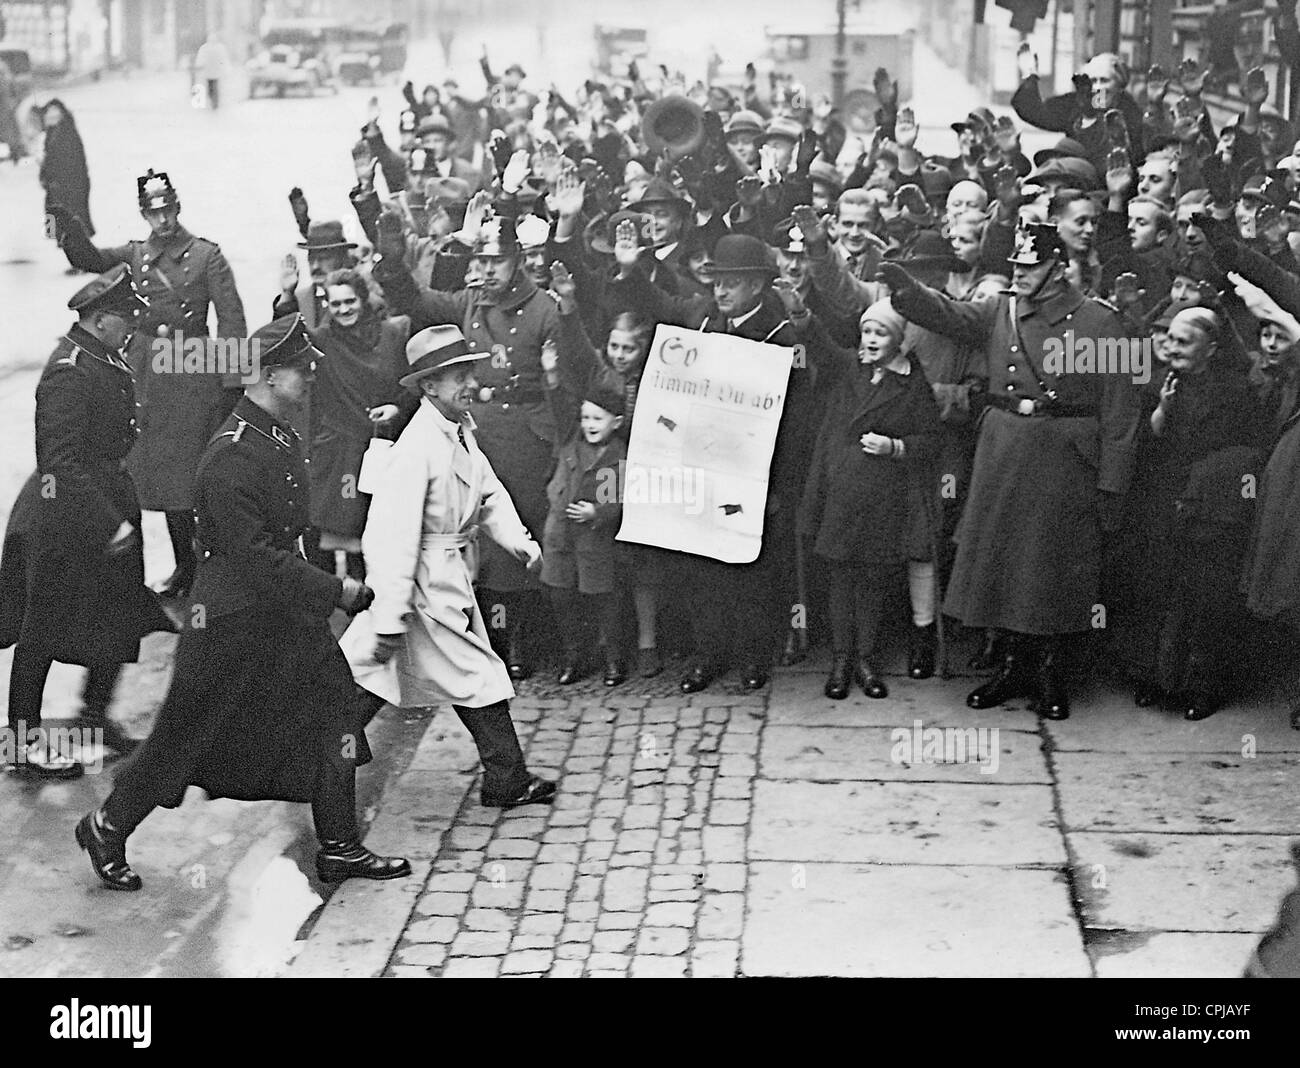 Joseph Goebbels in the Reichstag elections on 12.11.1933 - Stock Image